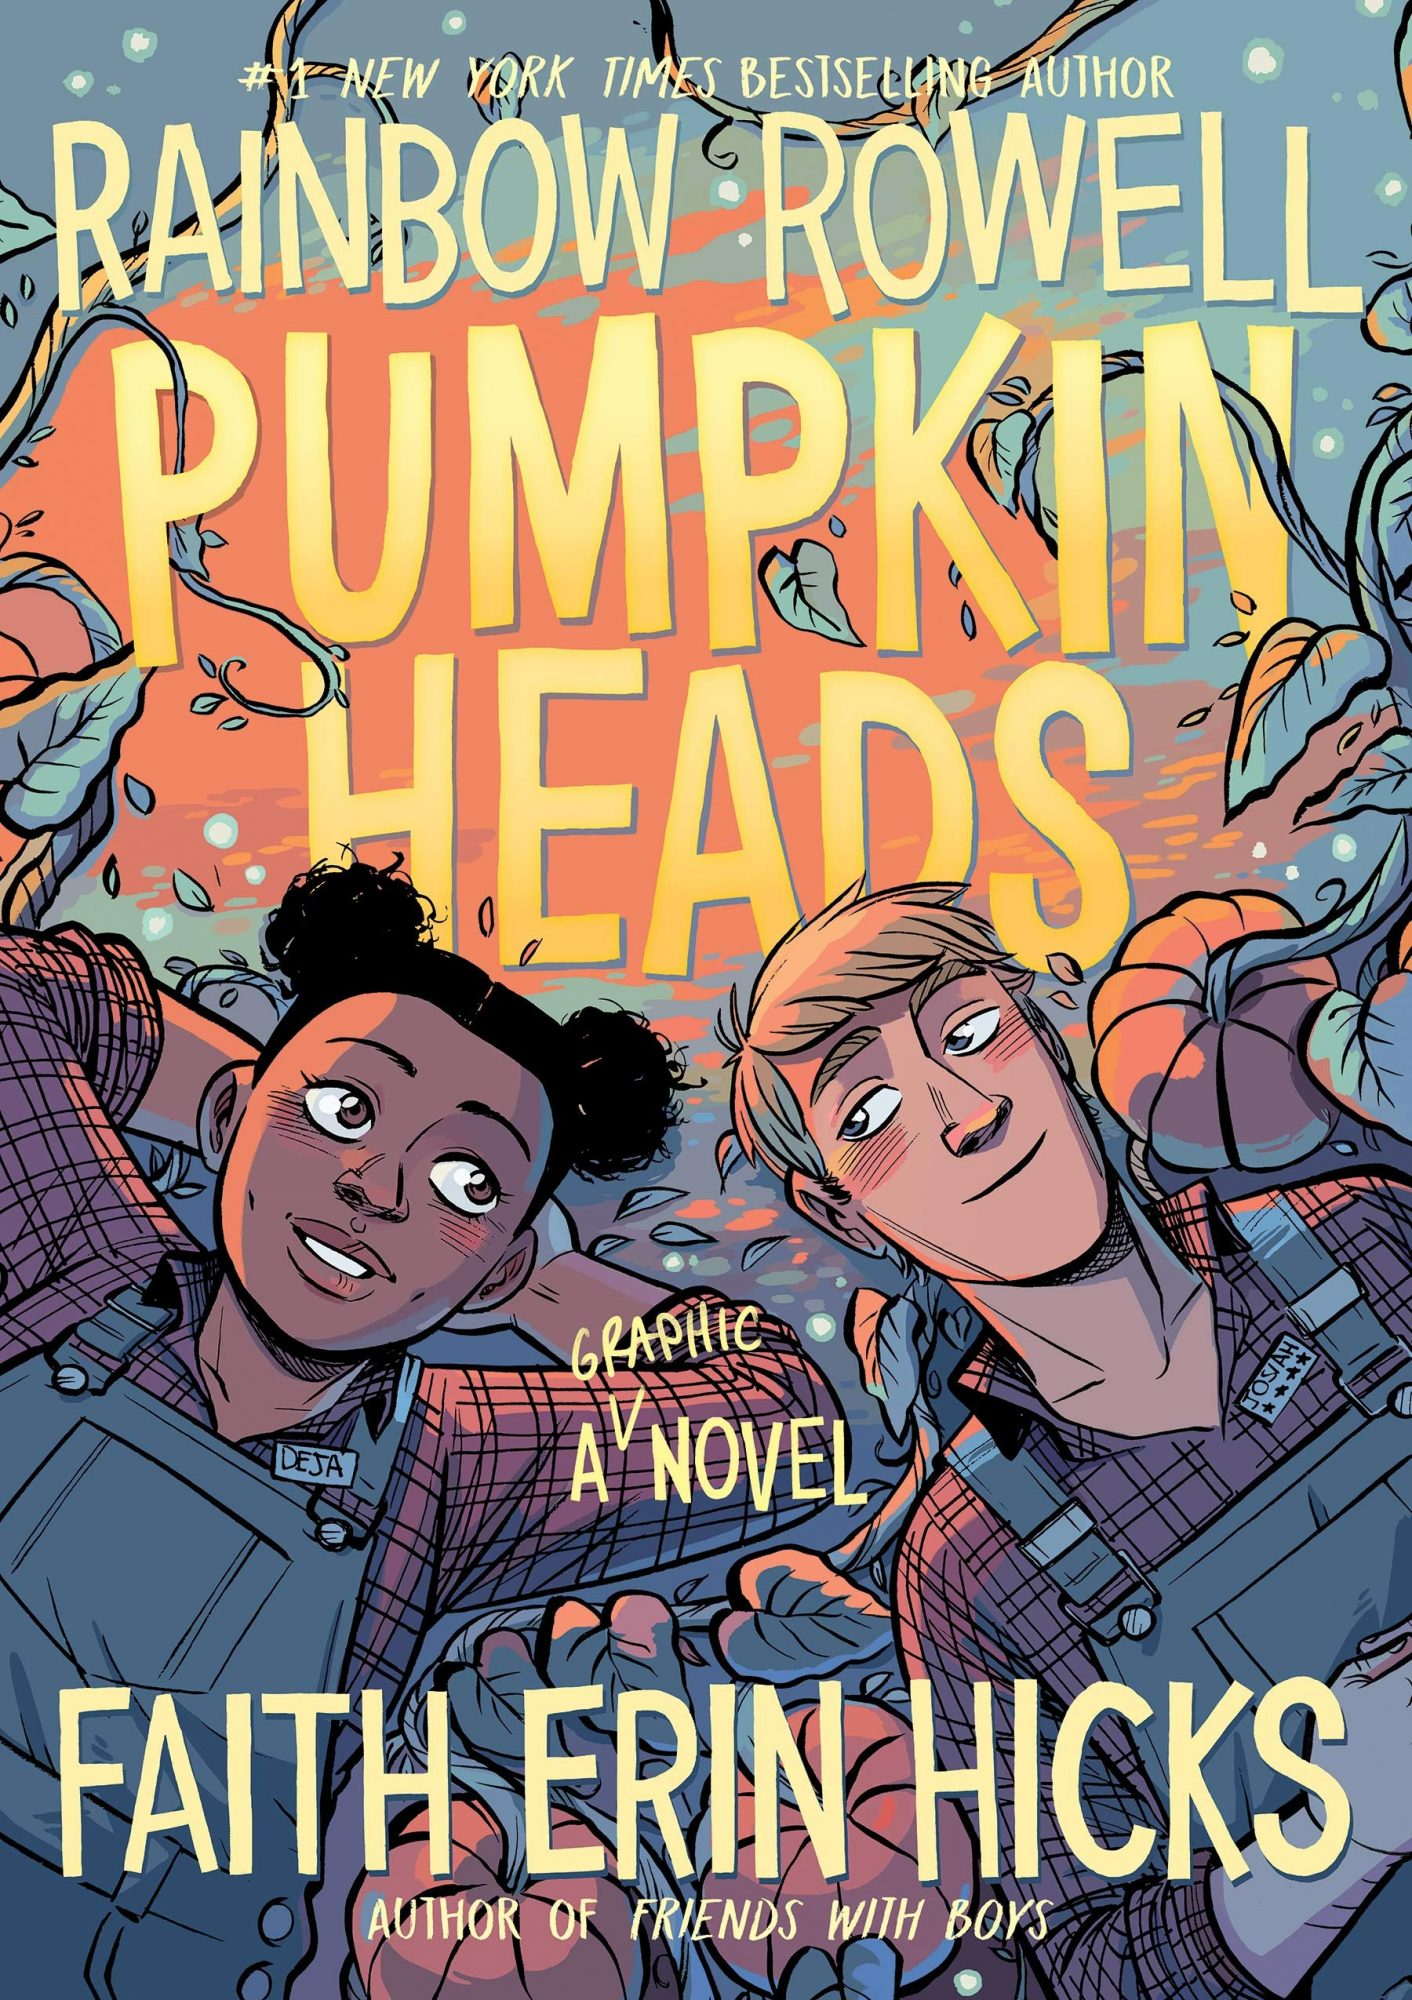 Pumpkinheads, by Rainbow Rowell & Faith Erin Hicks